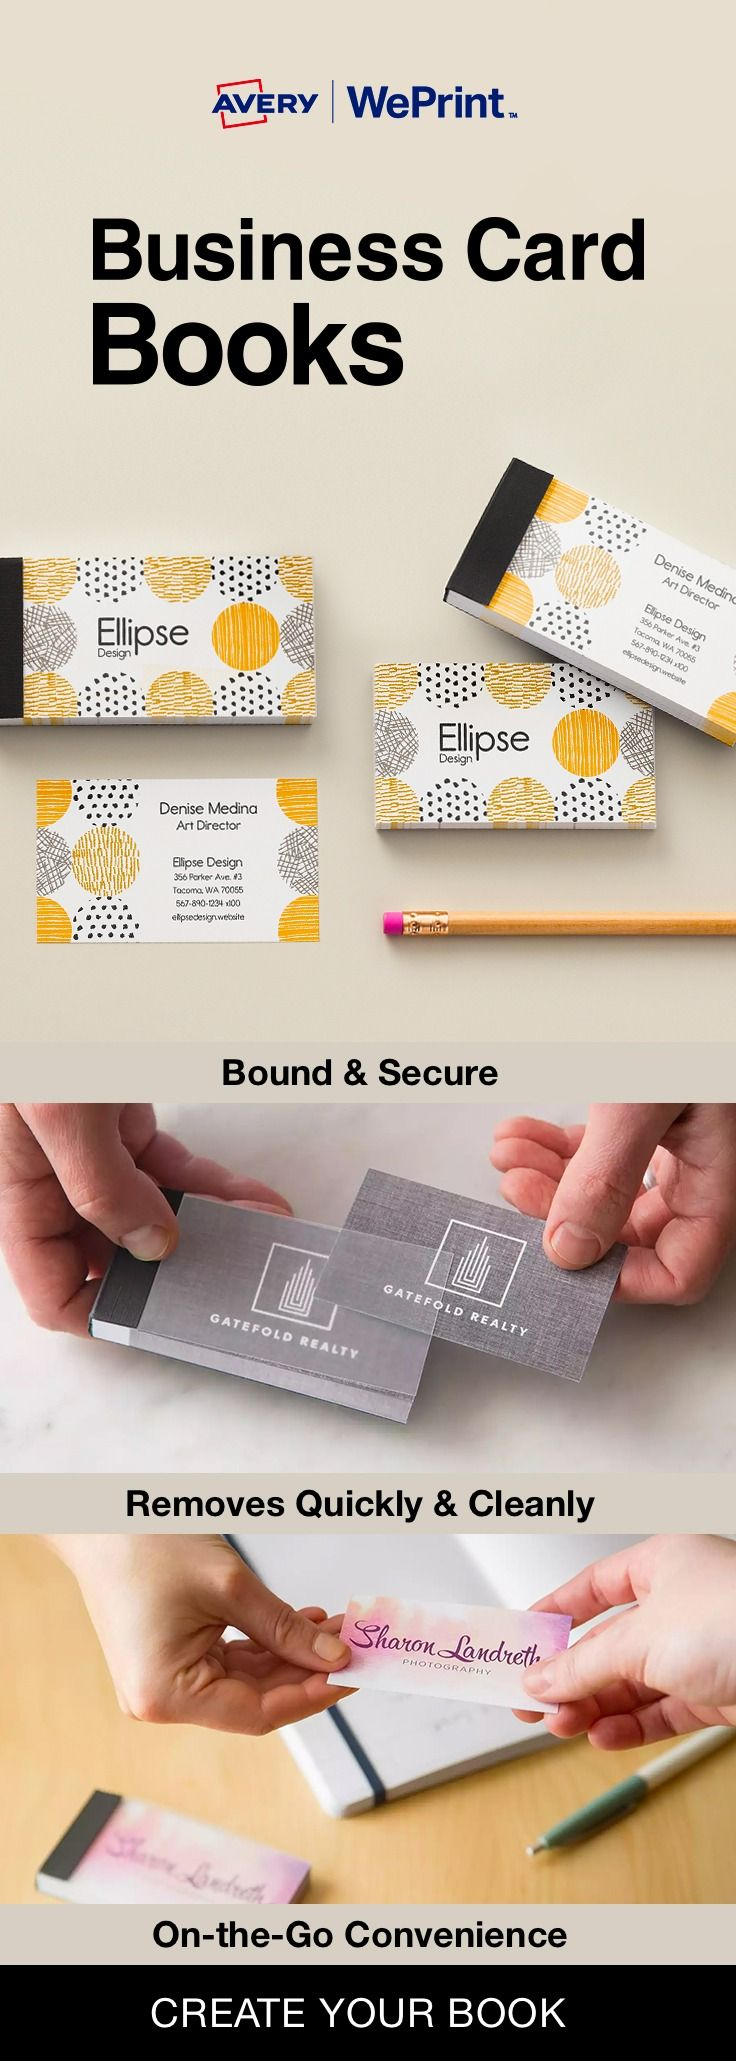 38 best creative b cards images on pinterest visit cards business weprint business card books are premium business cards neatly bound in a secure covered book with a clear cover reheart Image collections